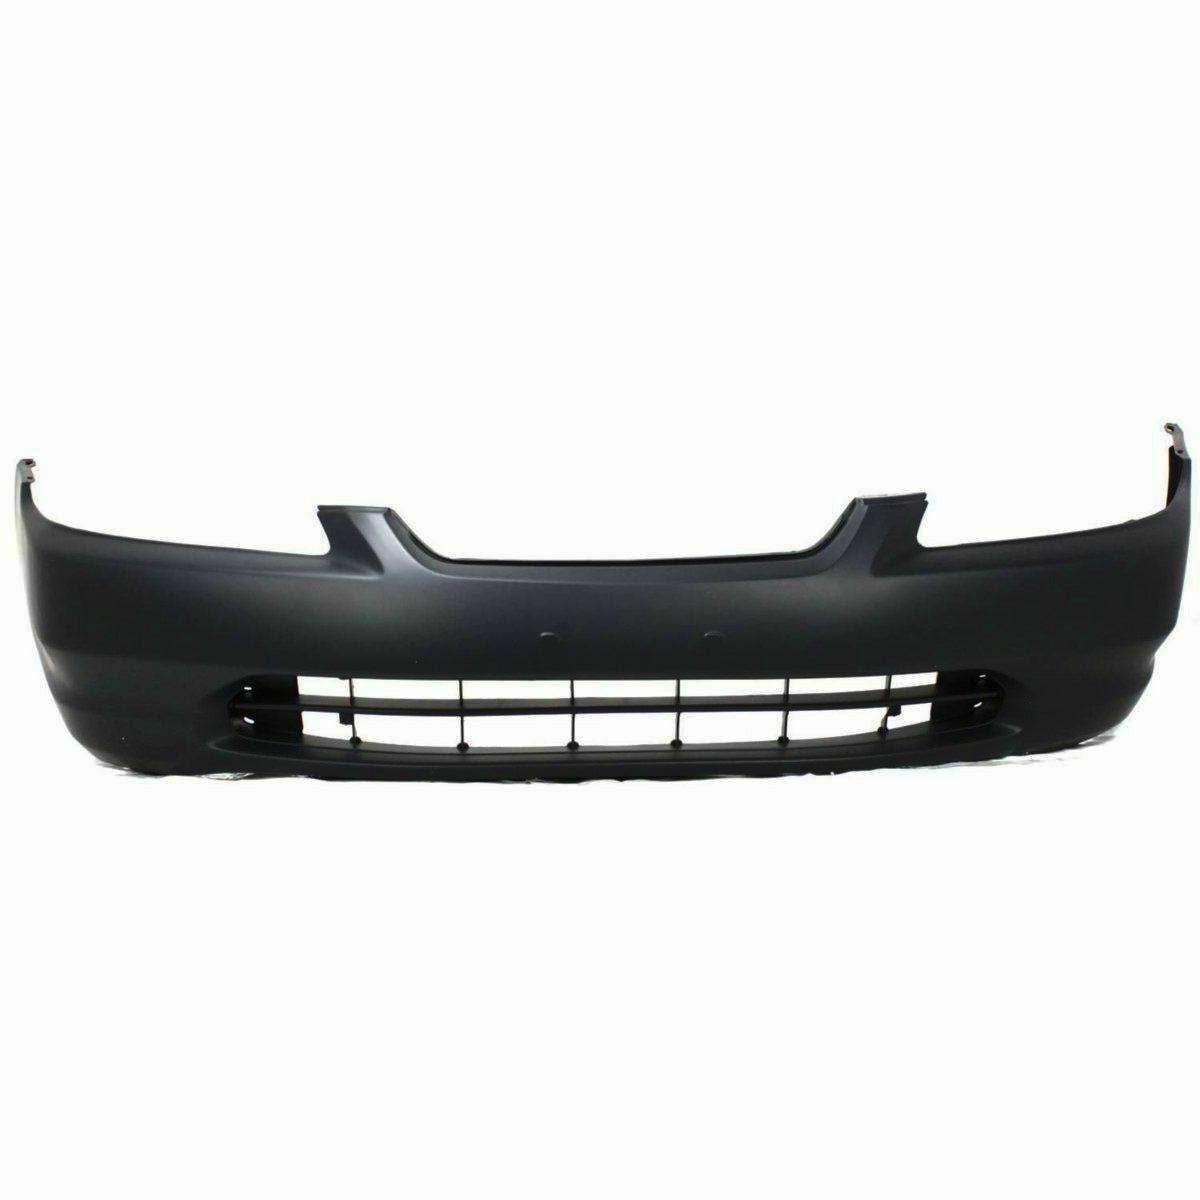 1998-2000 Honda Accord Coupe Front Bumper Painted